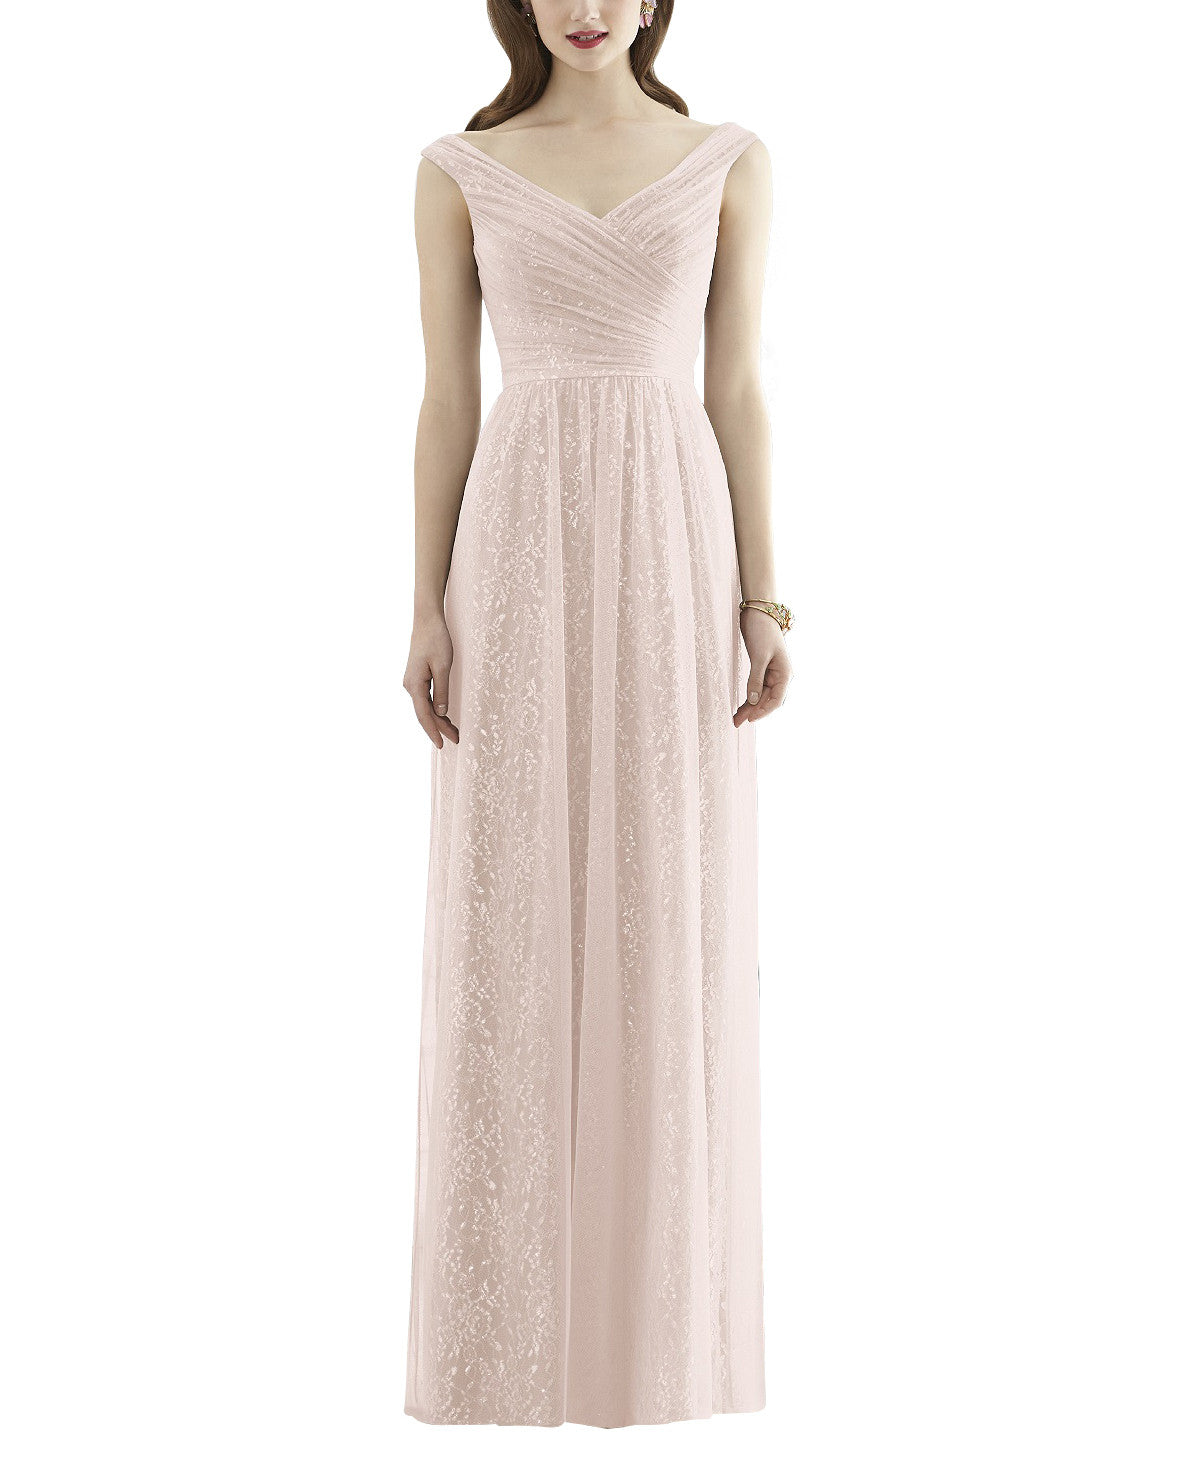 Dessy collection style 2946 bridesmaid dress brideside dessy collection style 2946 ombrellifo Gallery